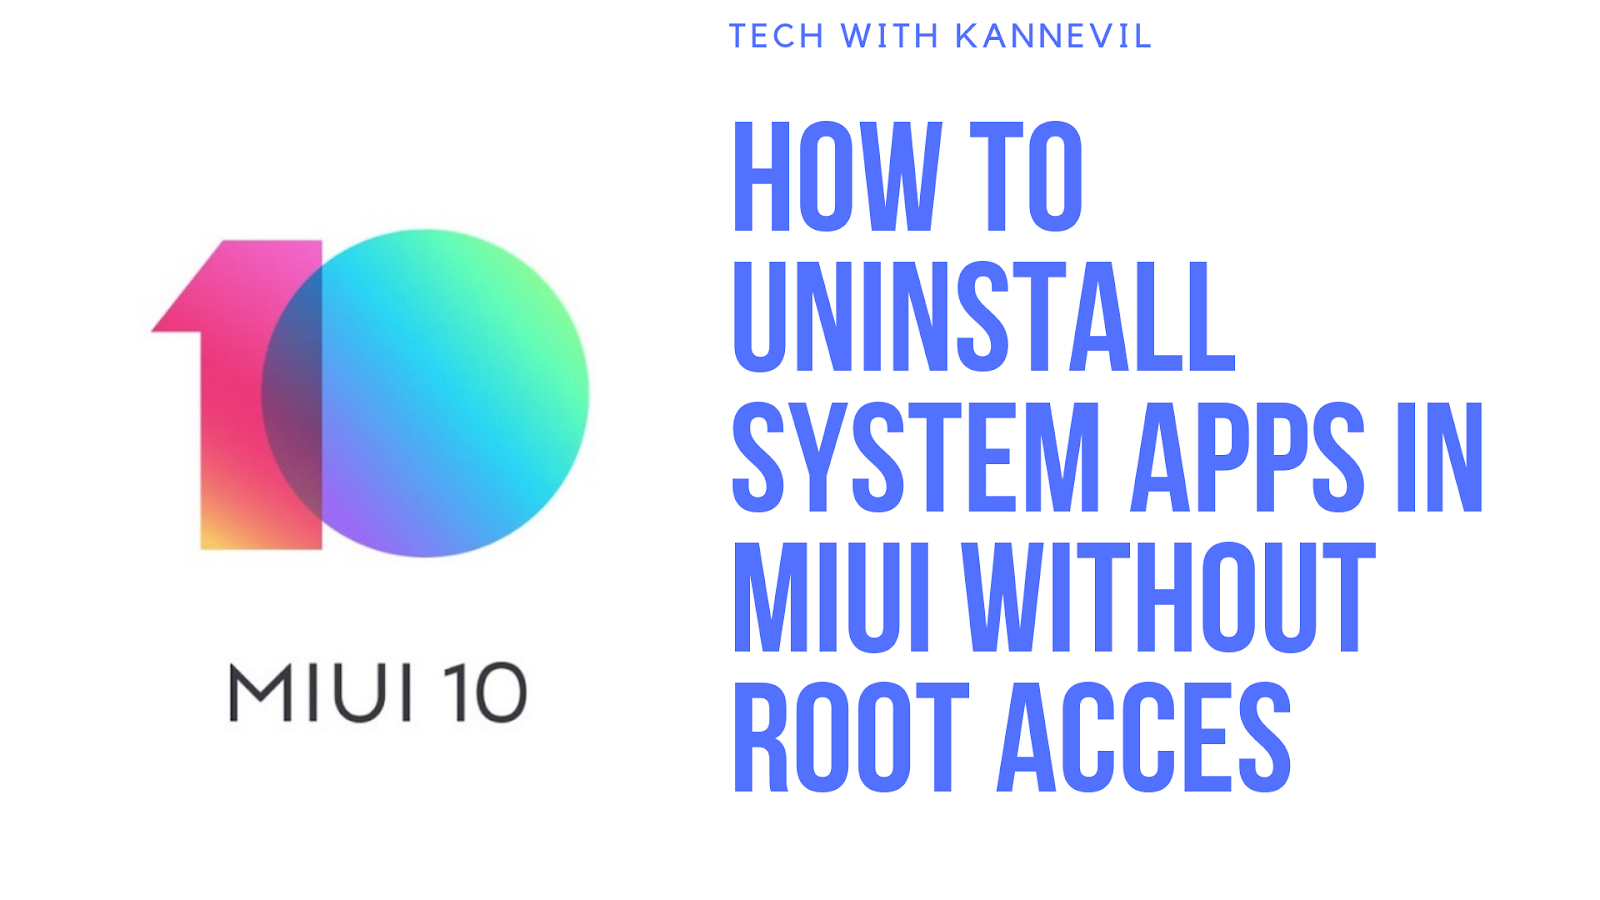 How to uninstall system apps in MIUI without root access   TWK